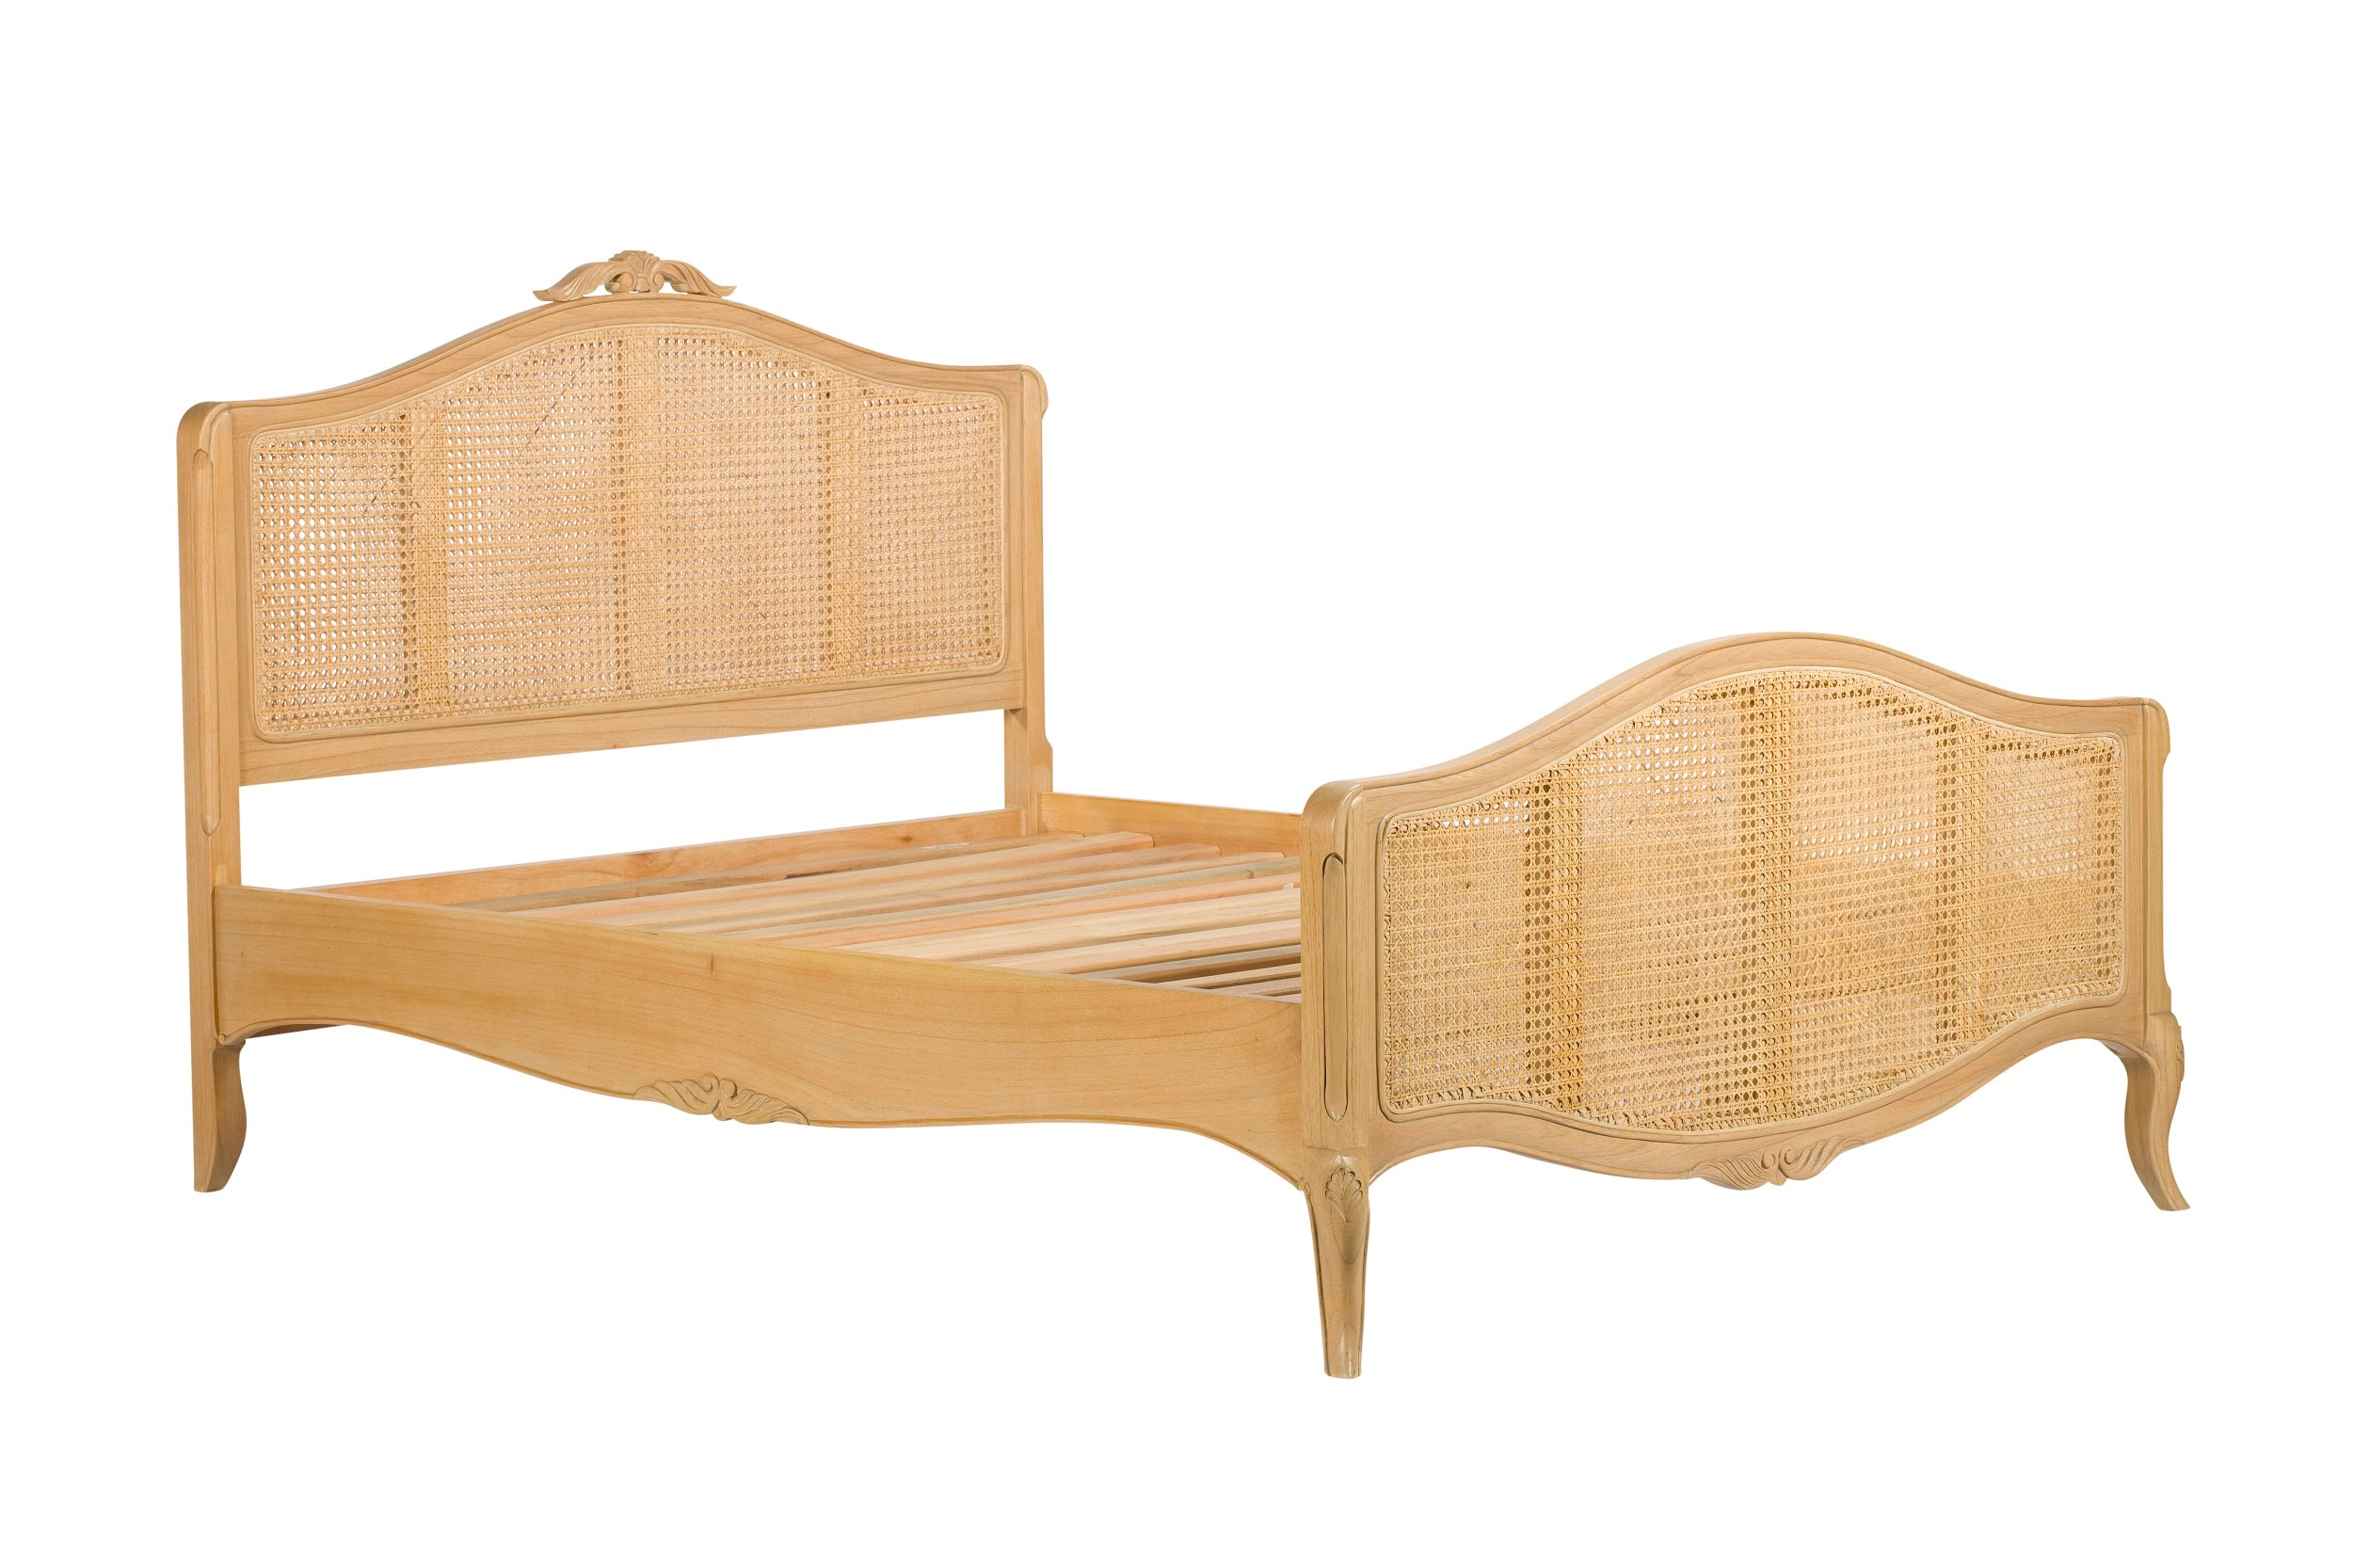 Limousin Bed Frames With Hand Woven Rattan-Bed frames-Baker Limoges-1.35 double-Against The Grain Furniture